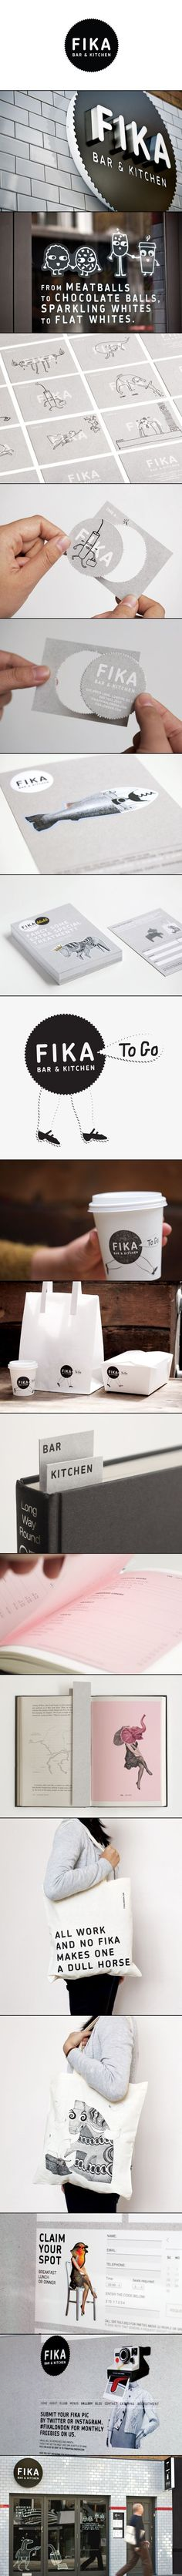 """Fika Bar and Kitchen takes the idea of a """"coffee break"""" to a whole new level. #Branding #London #Retail   Branding At It's Best"""